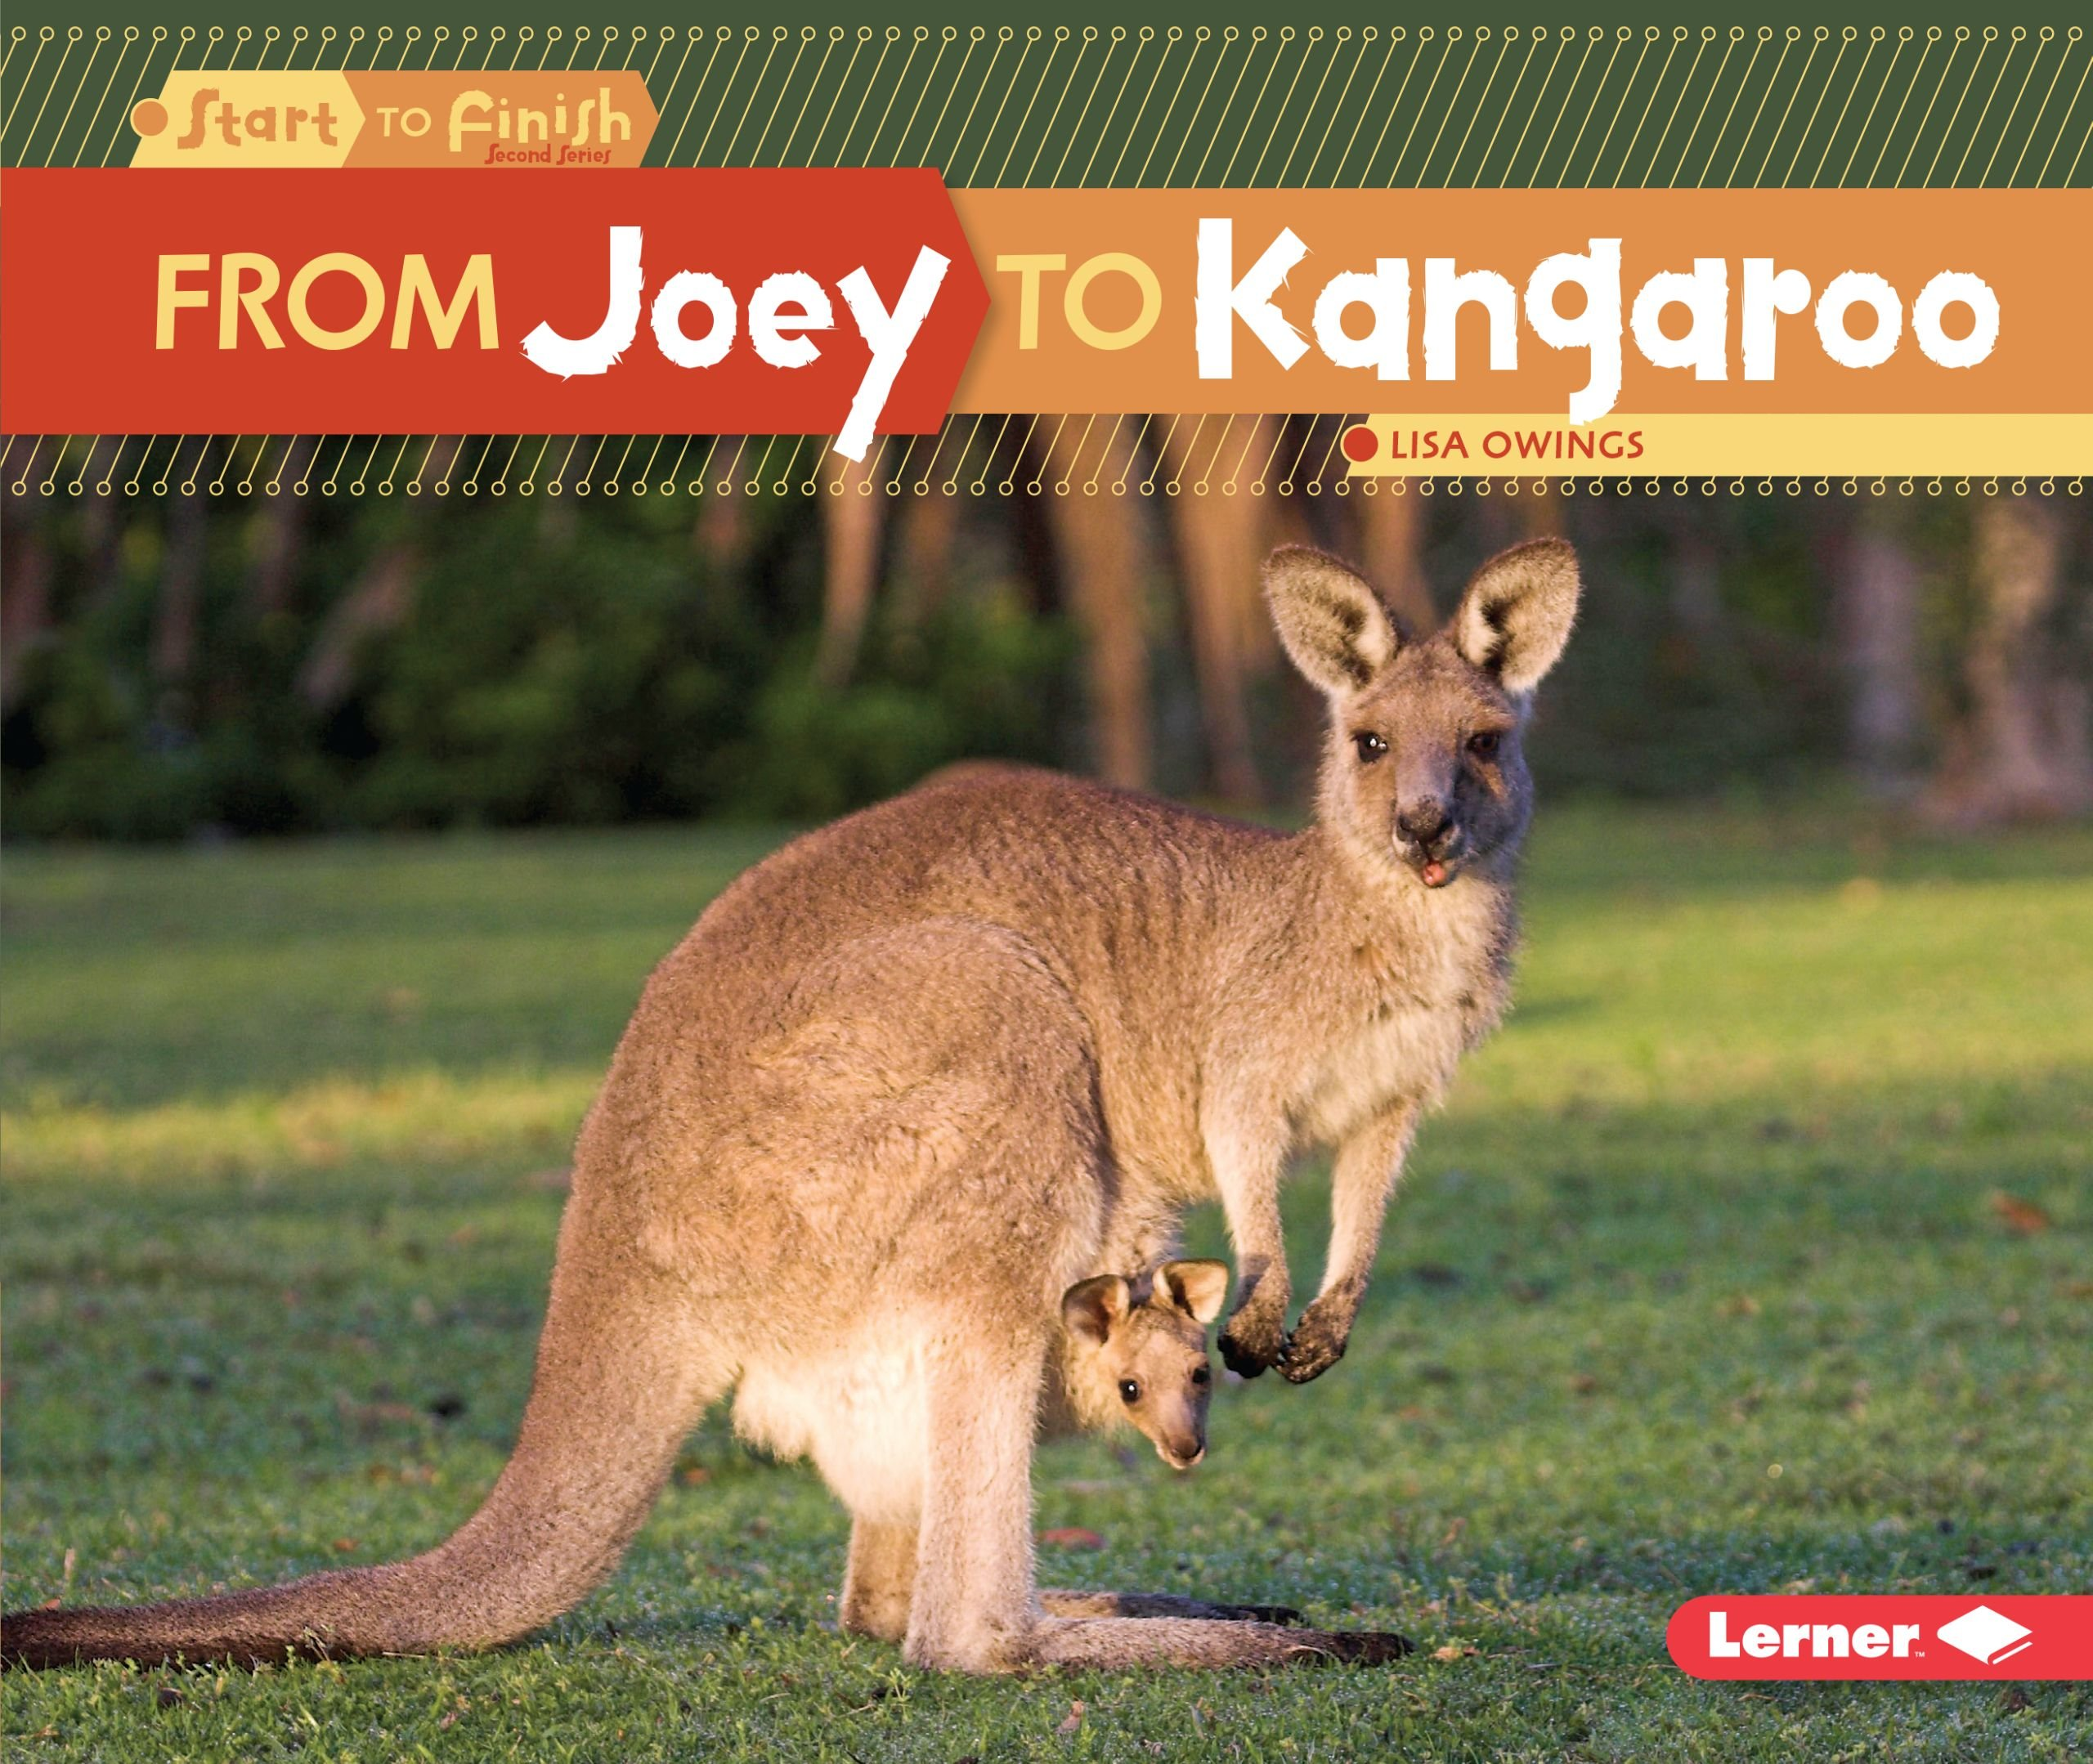 Download From Joey to Kangaroo (Start to Finish, Second Series) pdf